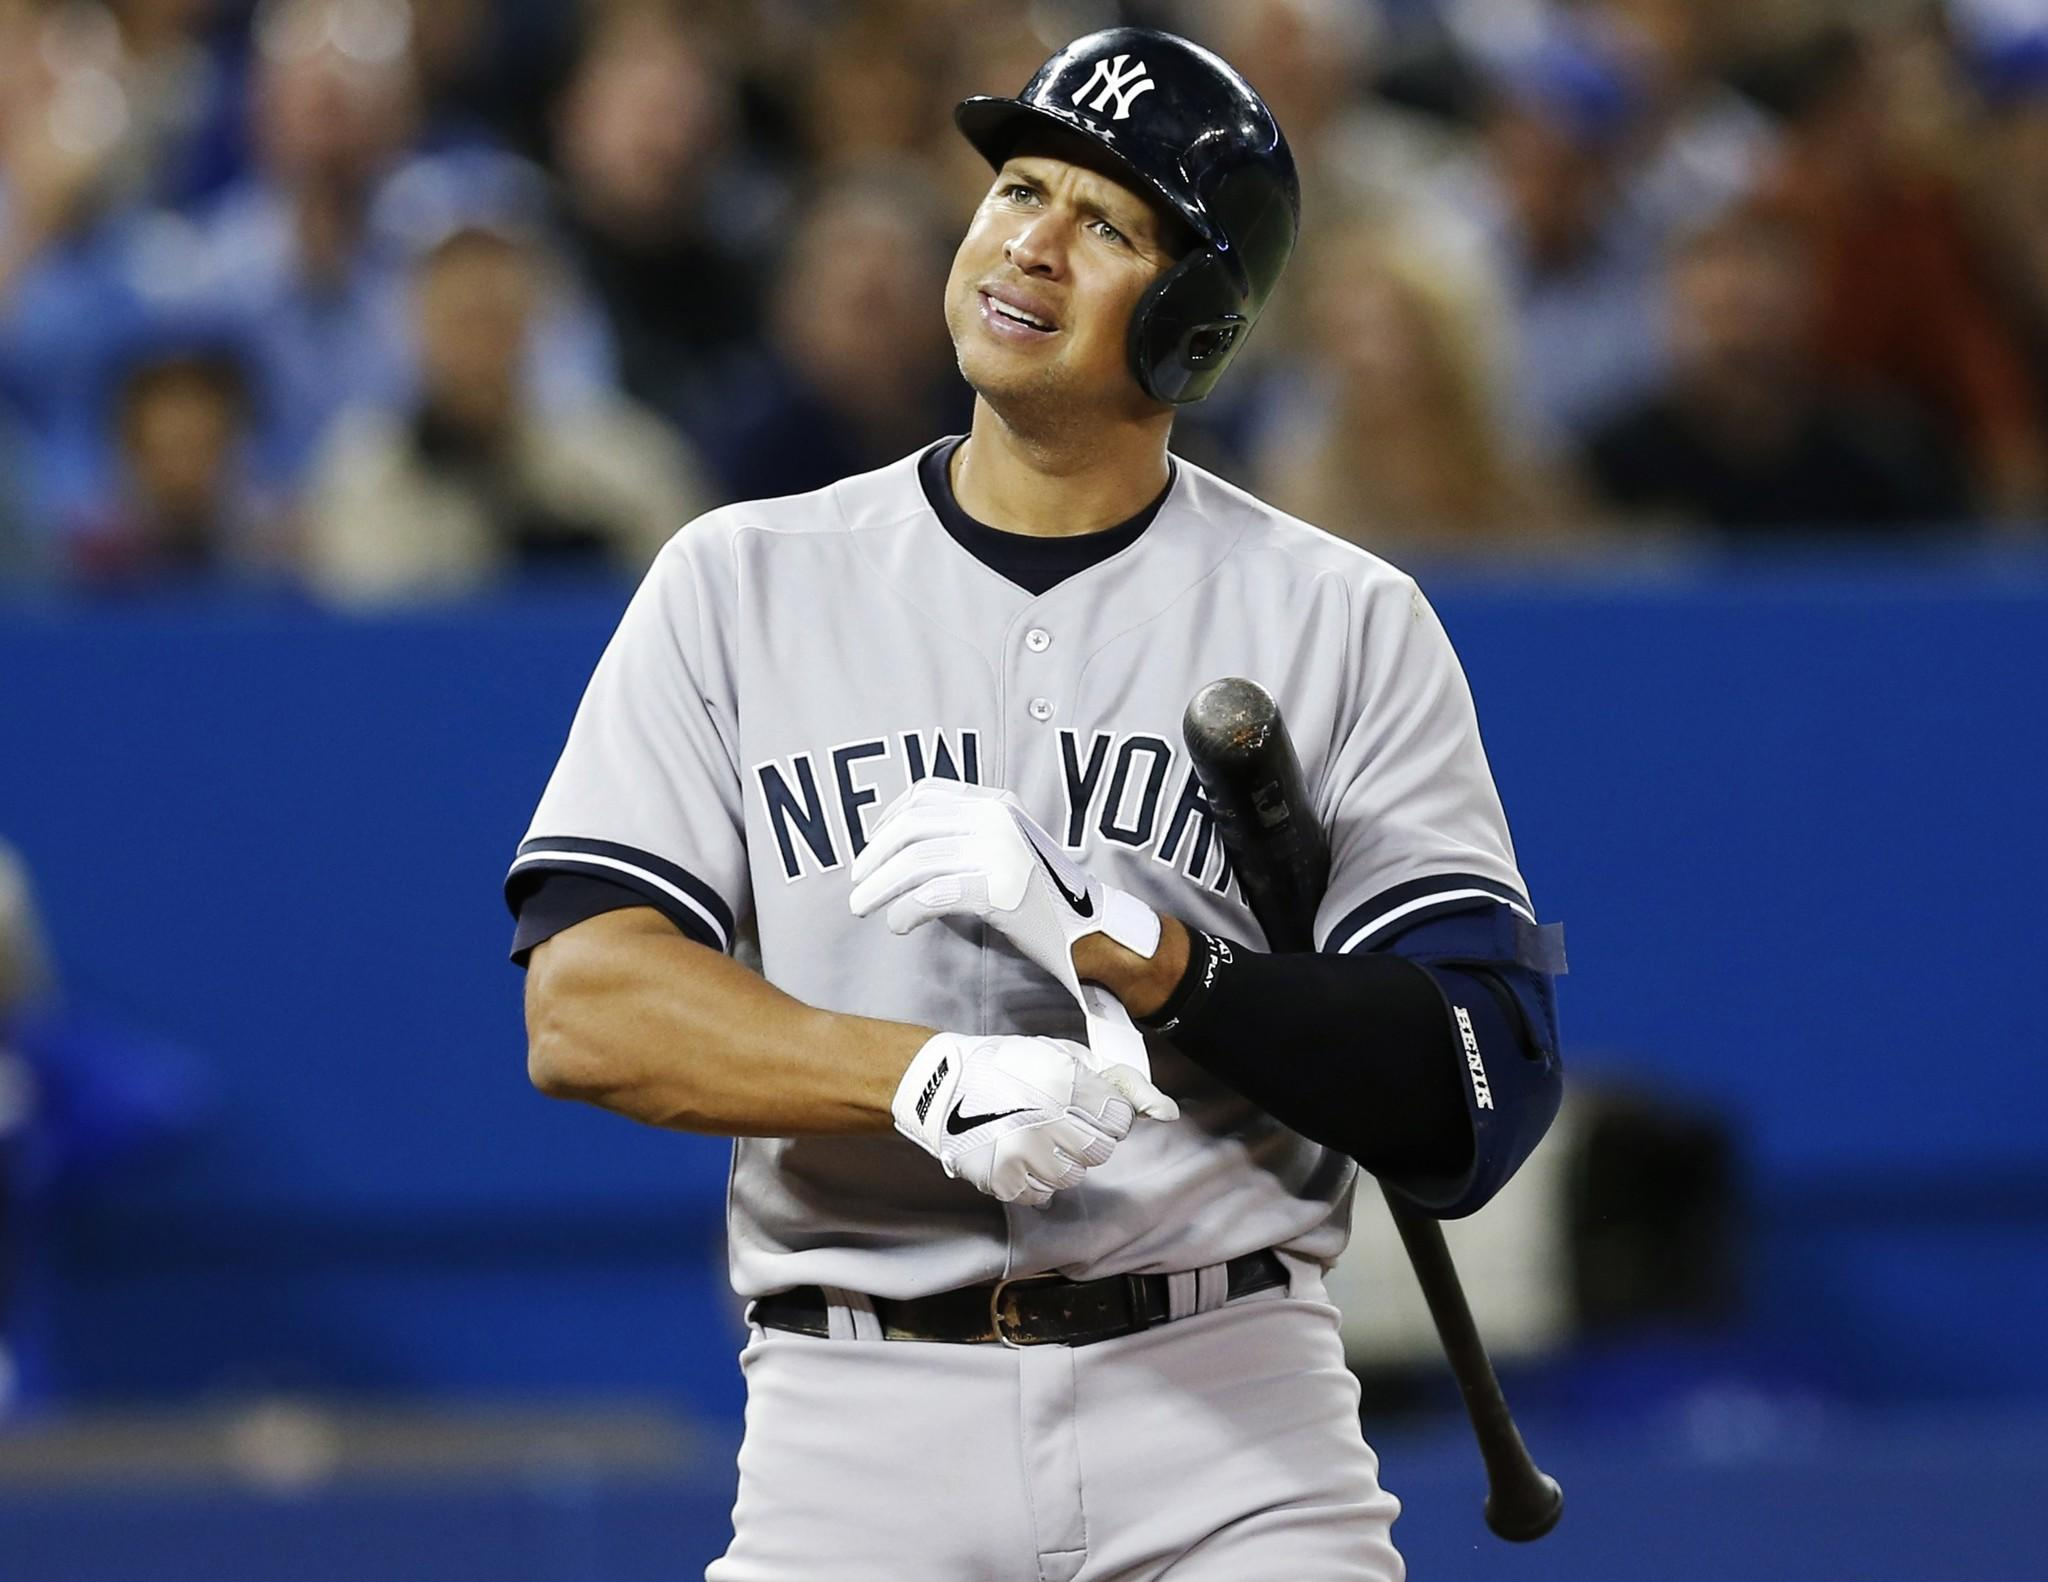 New York Yankees Alex Rodriguez reacts during an at bat against the Toronto Blue Jays during a game on Sept. 17, 2013.